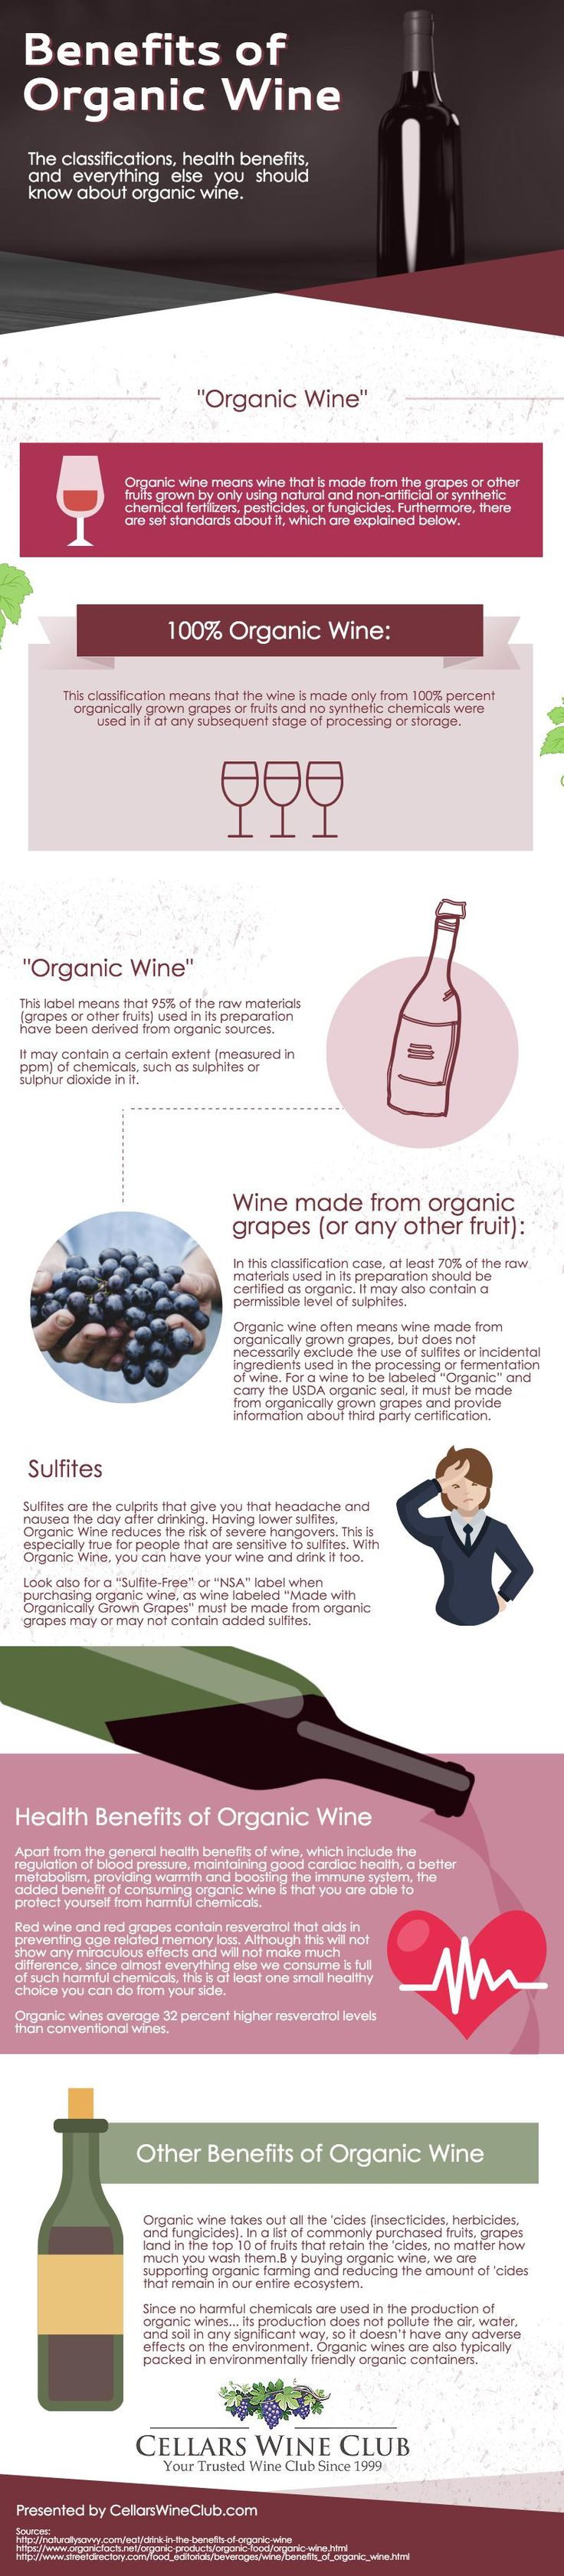 [infographic] classifications, health benefits, and everything else you should know about organic wine.